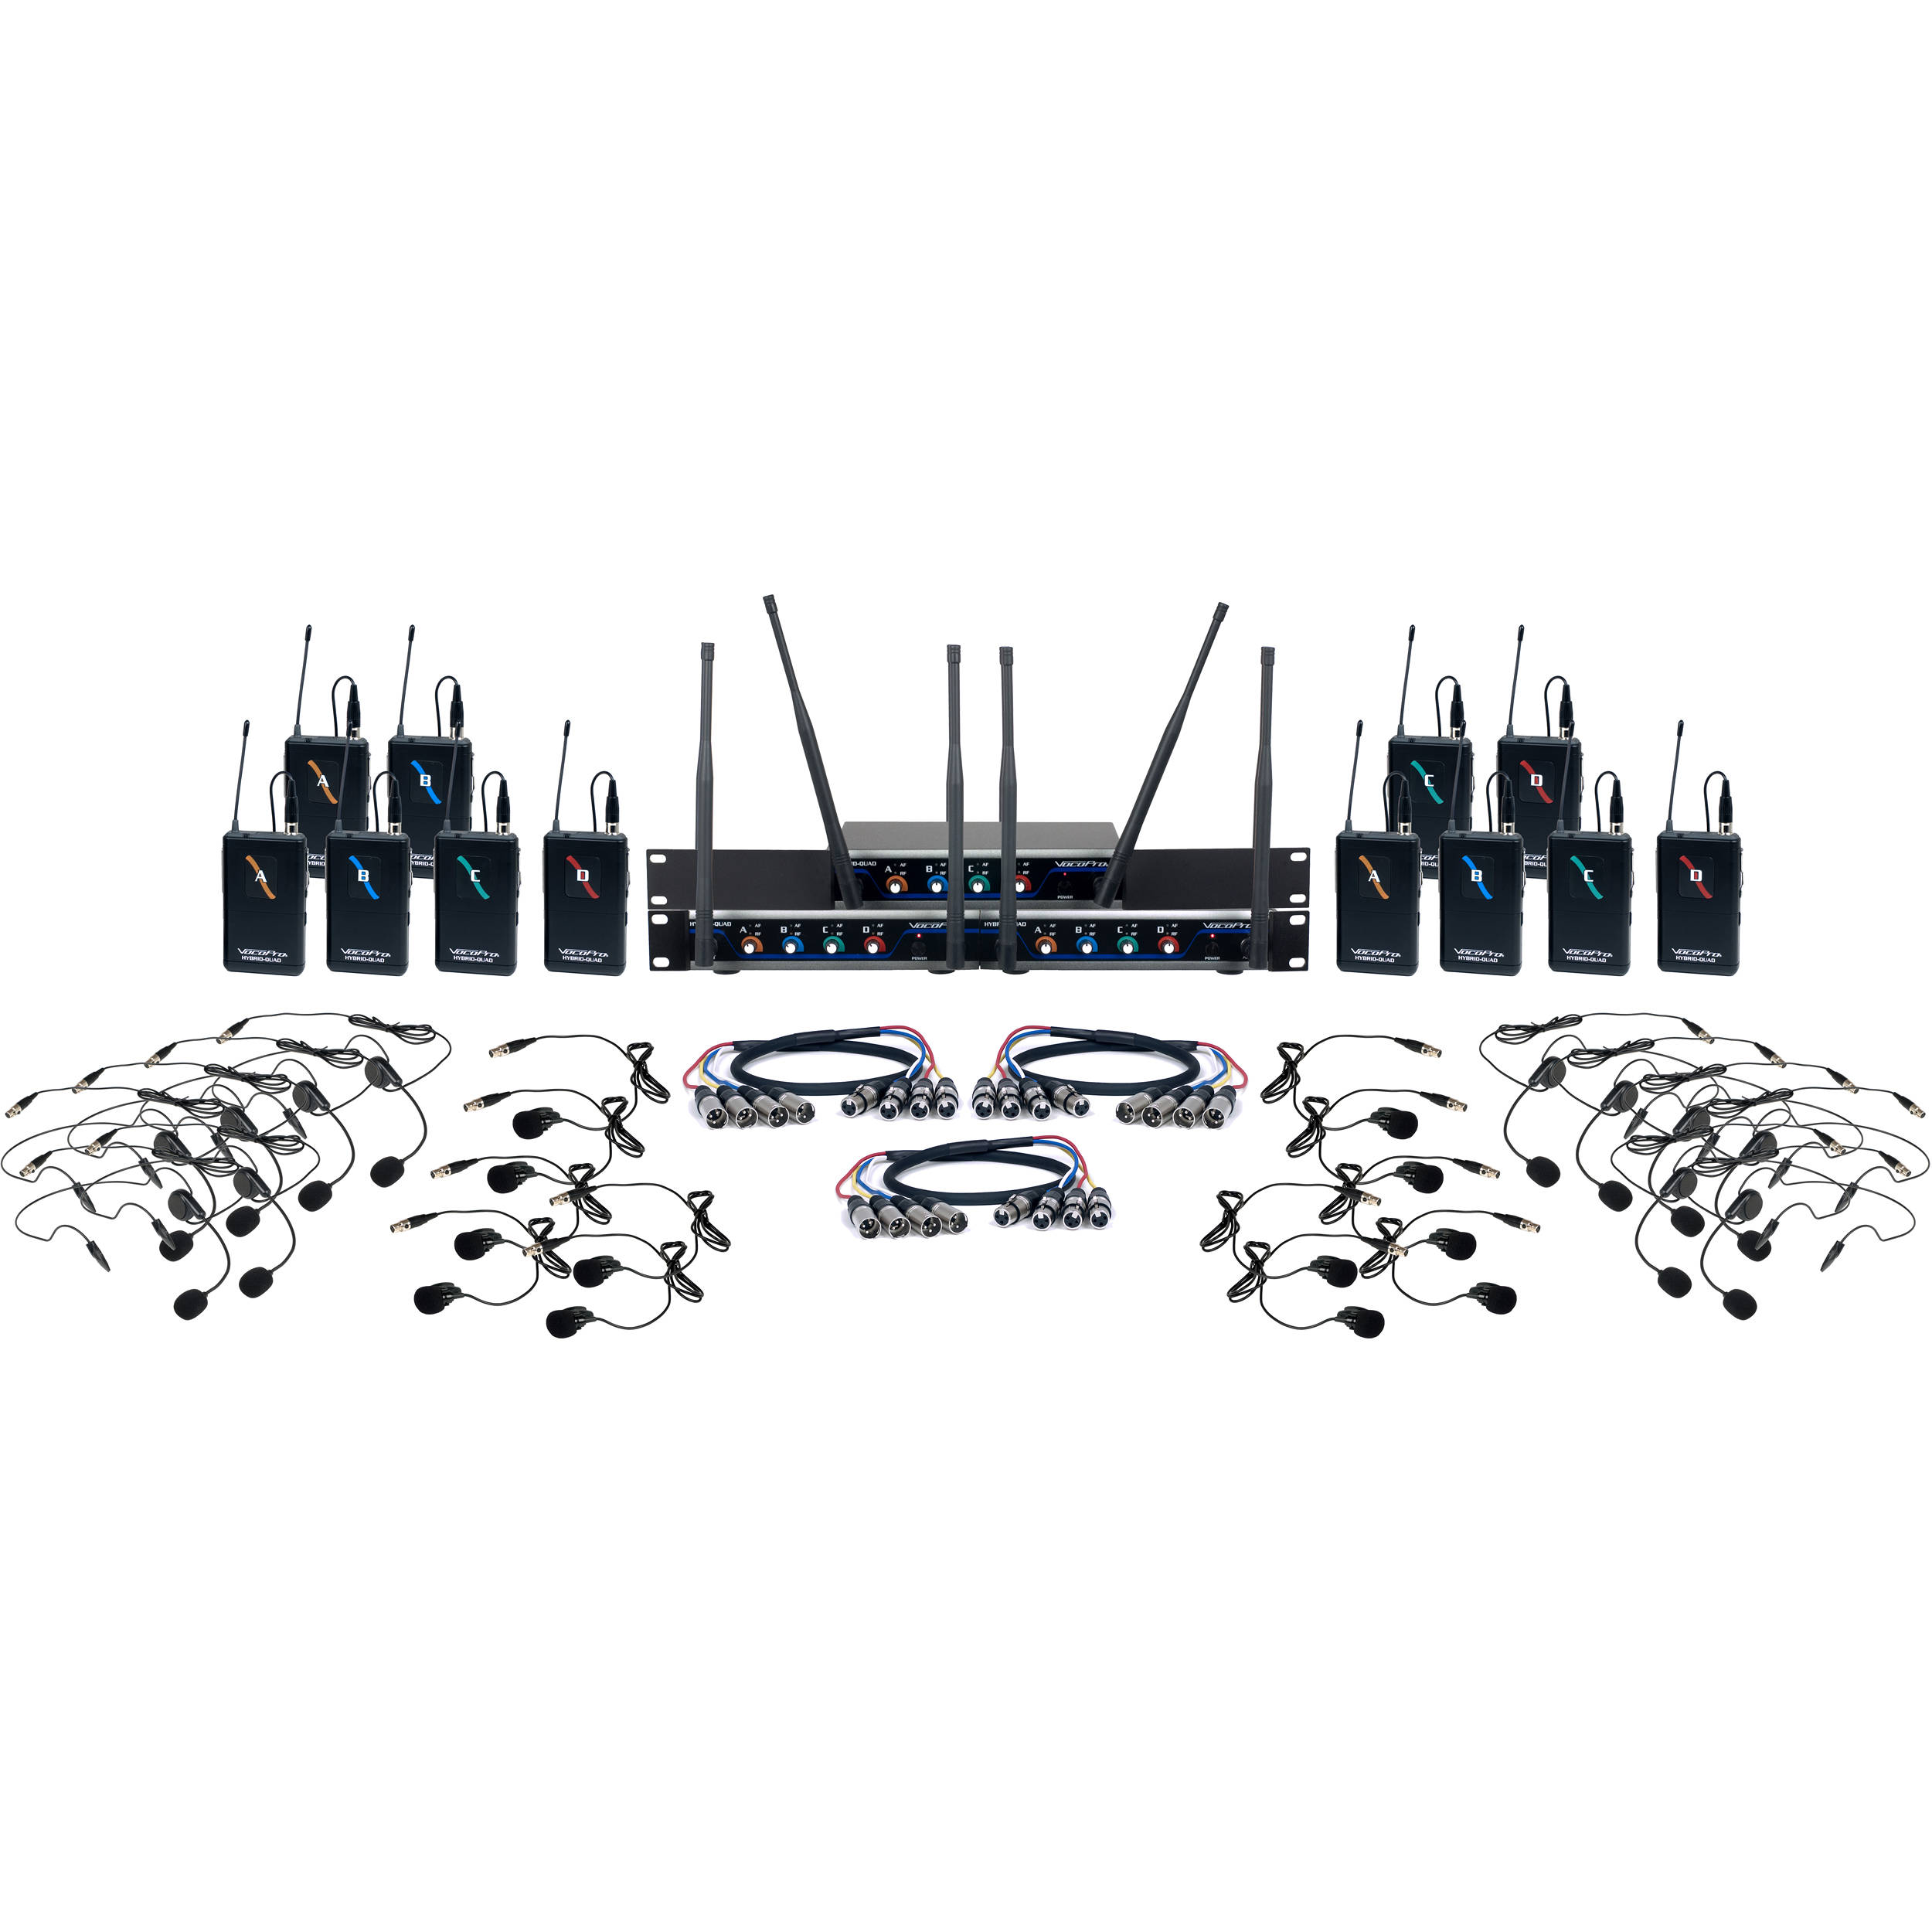 VocoPro Digital Play 12 Channel UHF System With Headset Lavalier Mics 900 MHz